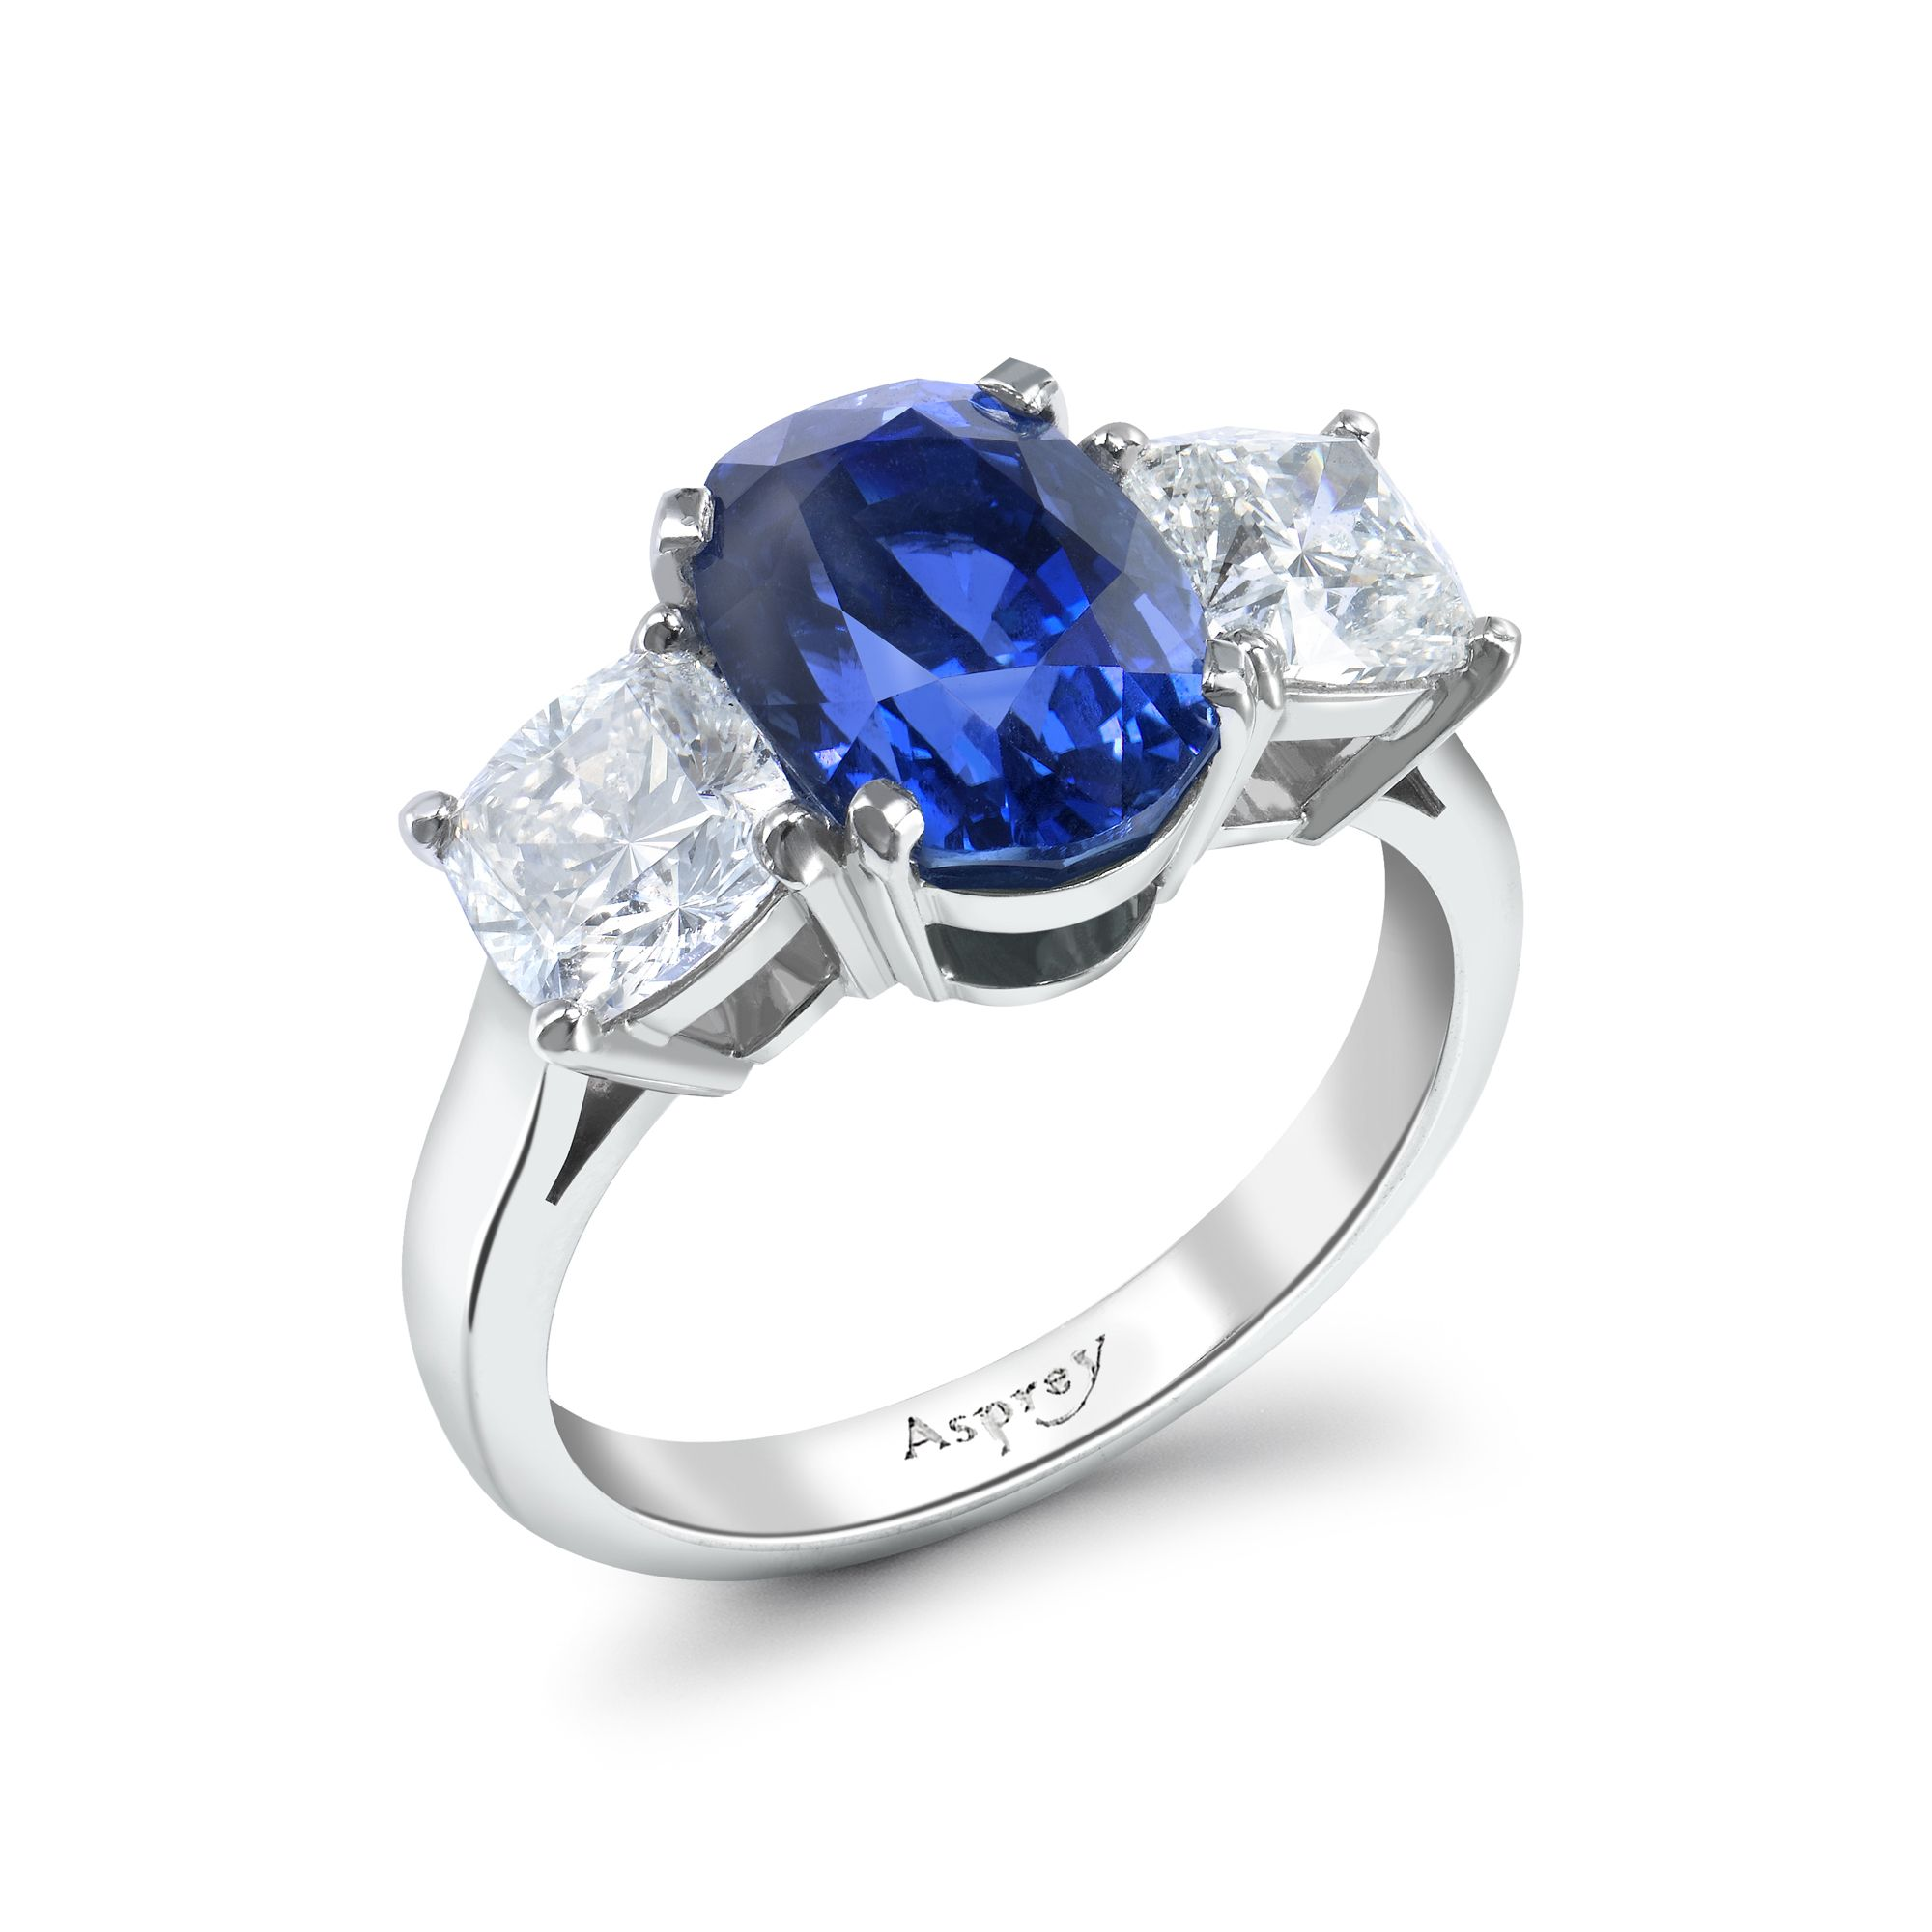 ring sapphire en tiffany auction diamond and brands co appraisal schlumberger valuation found results